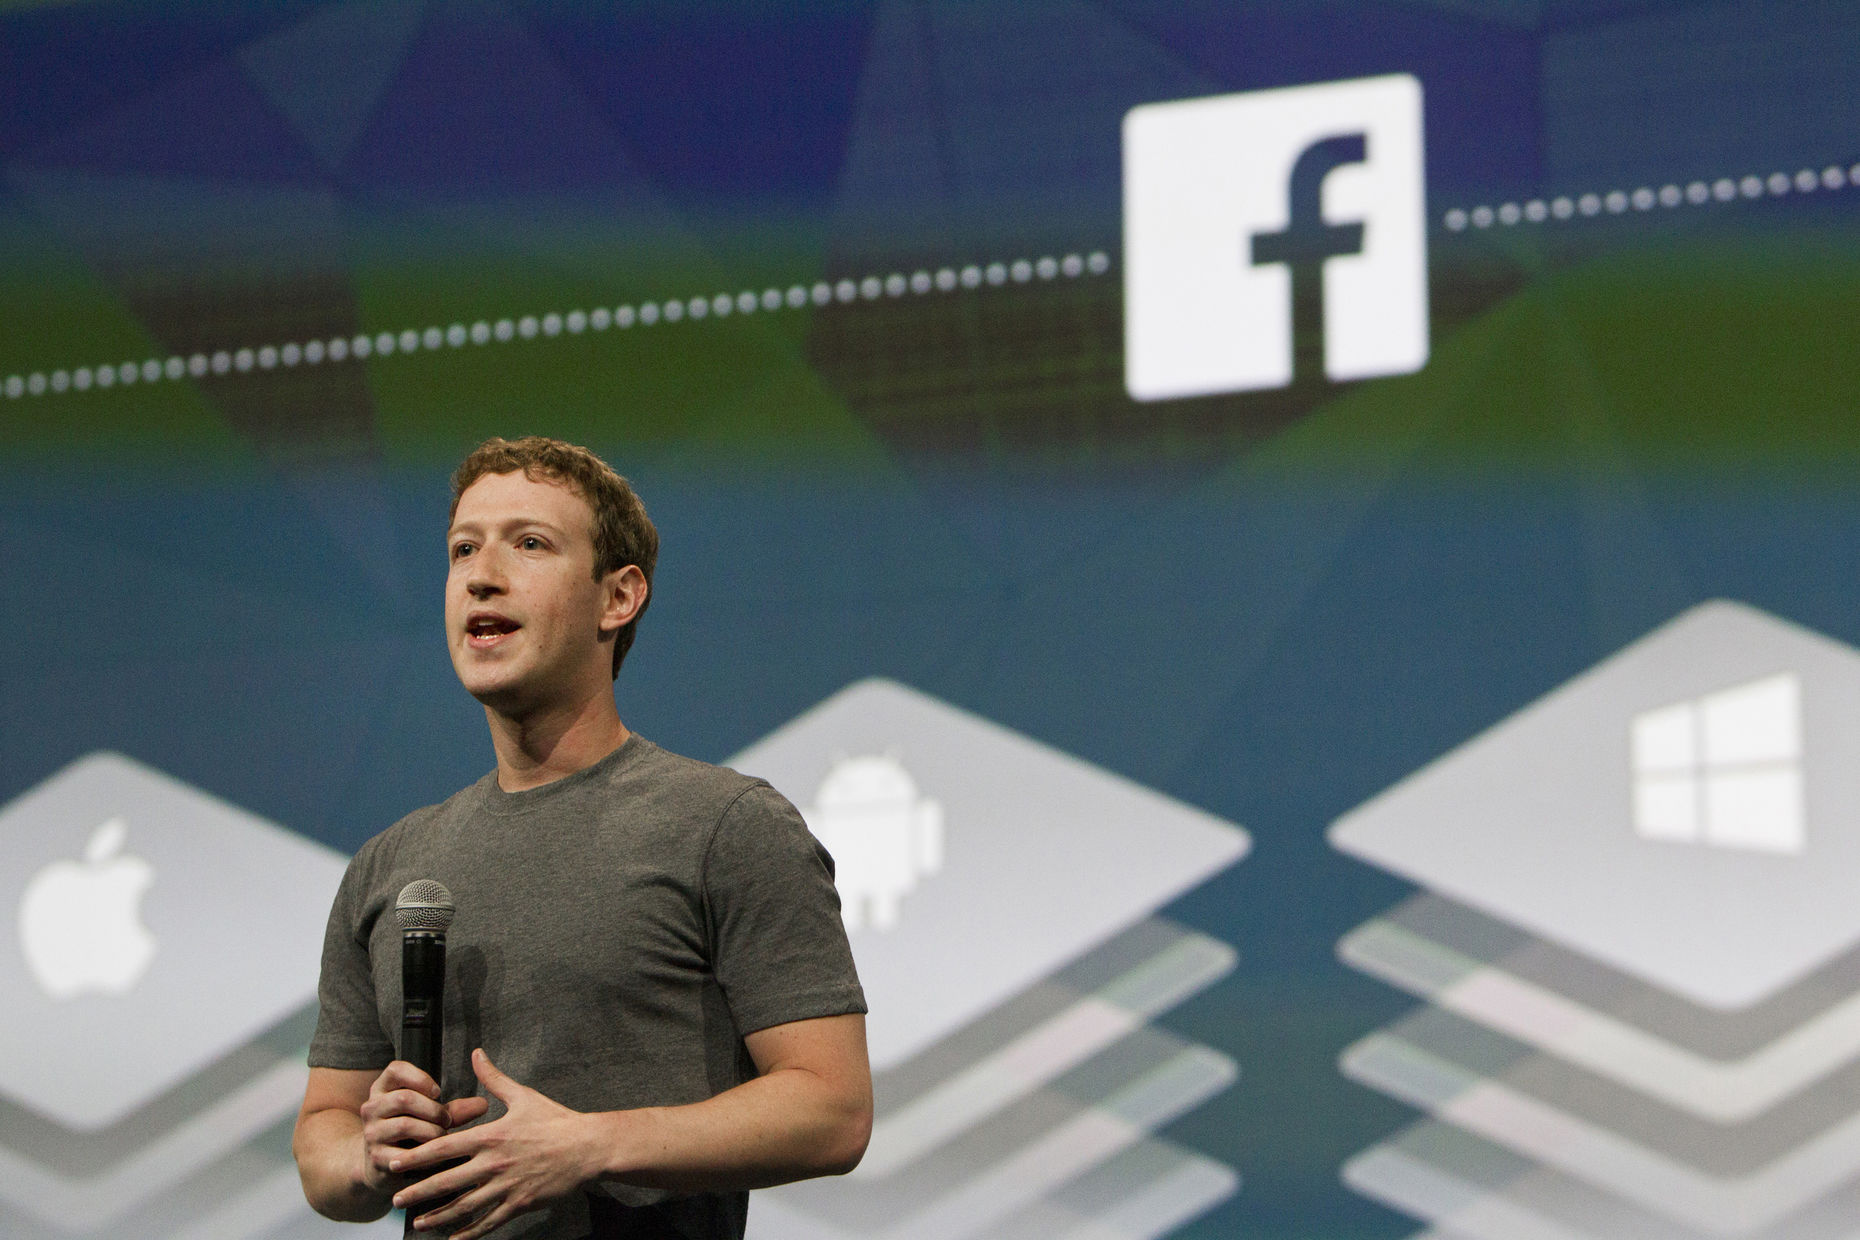 Facebook CEO Mark Zuckerberg addresses the F8 conference. Photo by Bloomberg.